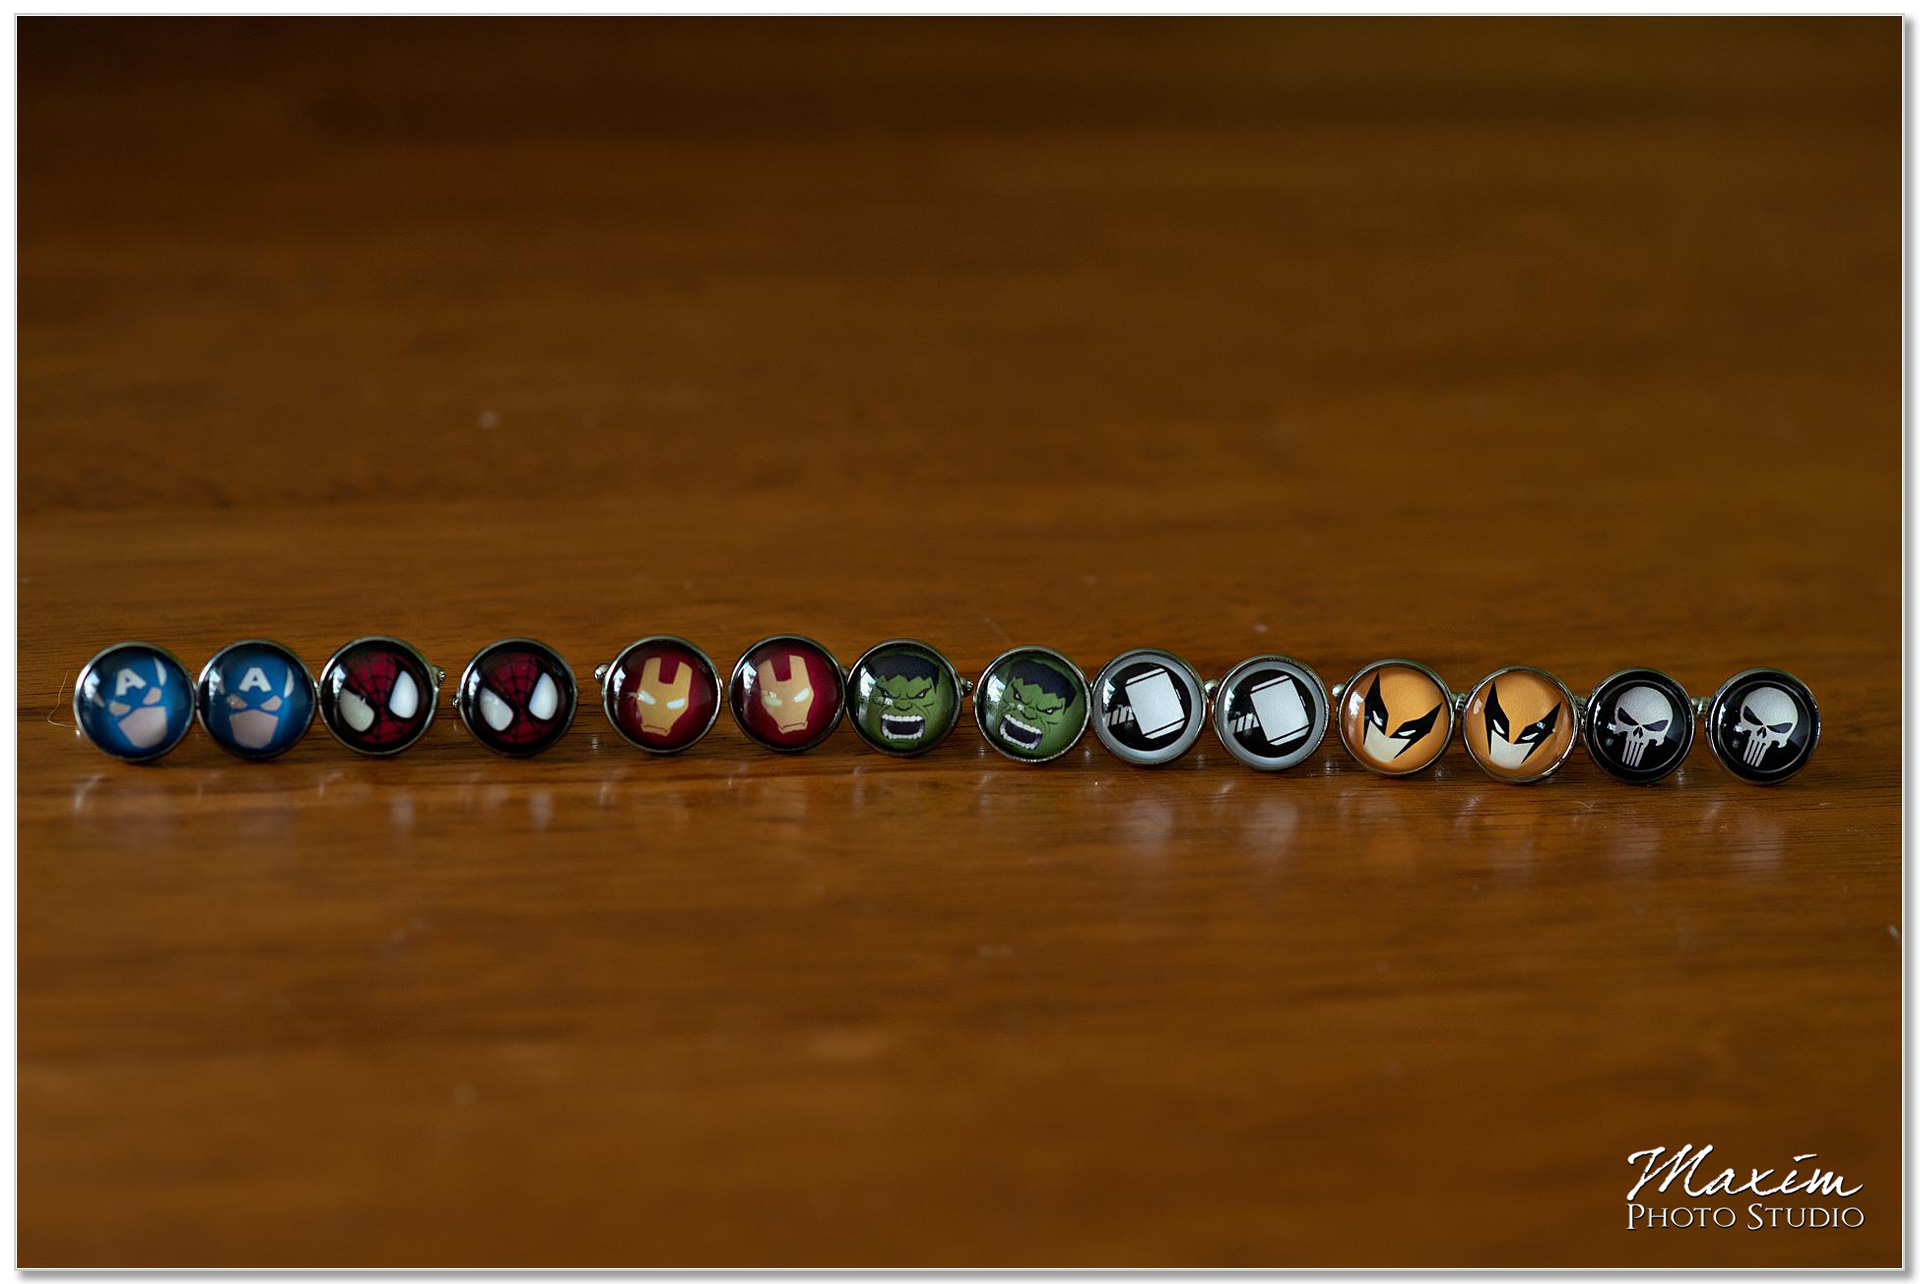 Superheroes groomsmen cufflinks